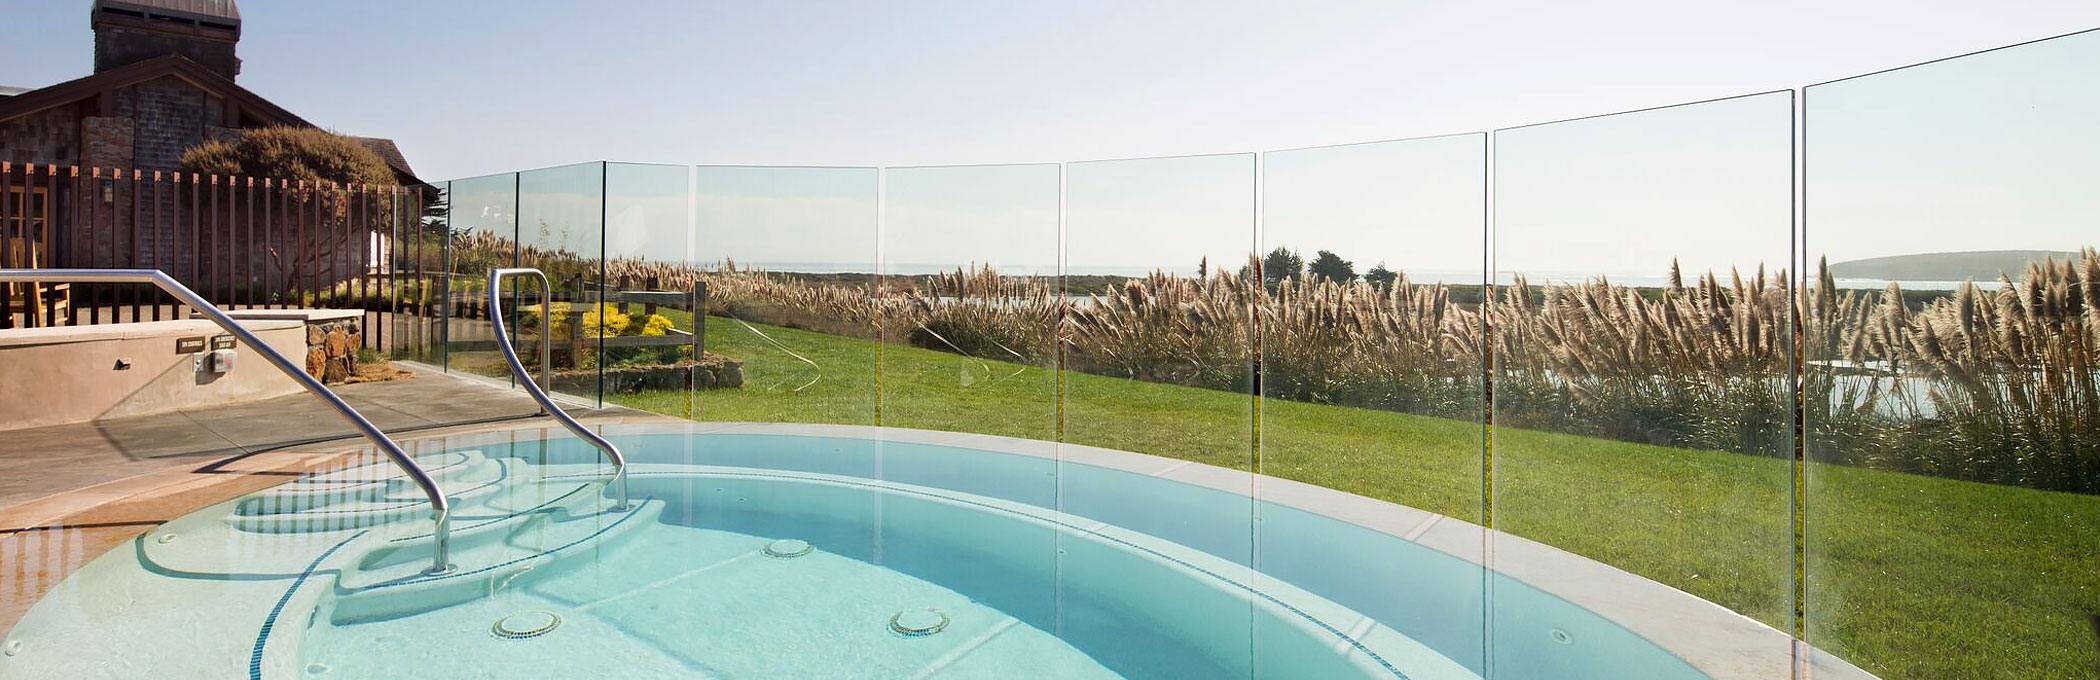 Enclosed room outdoor hot tub with see through panels to the outdoors